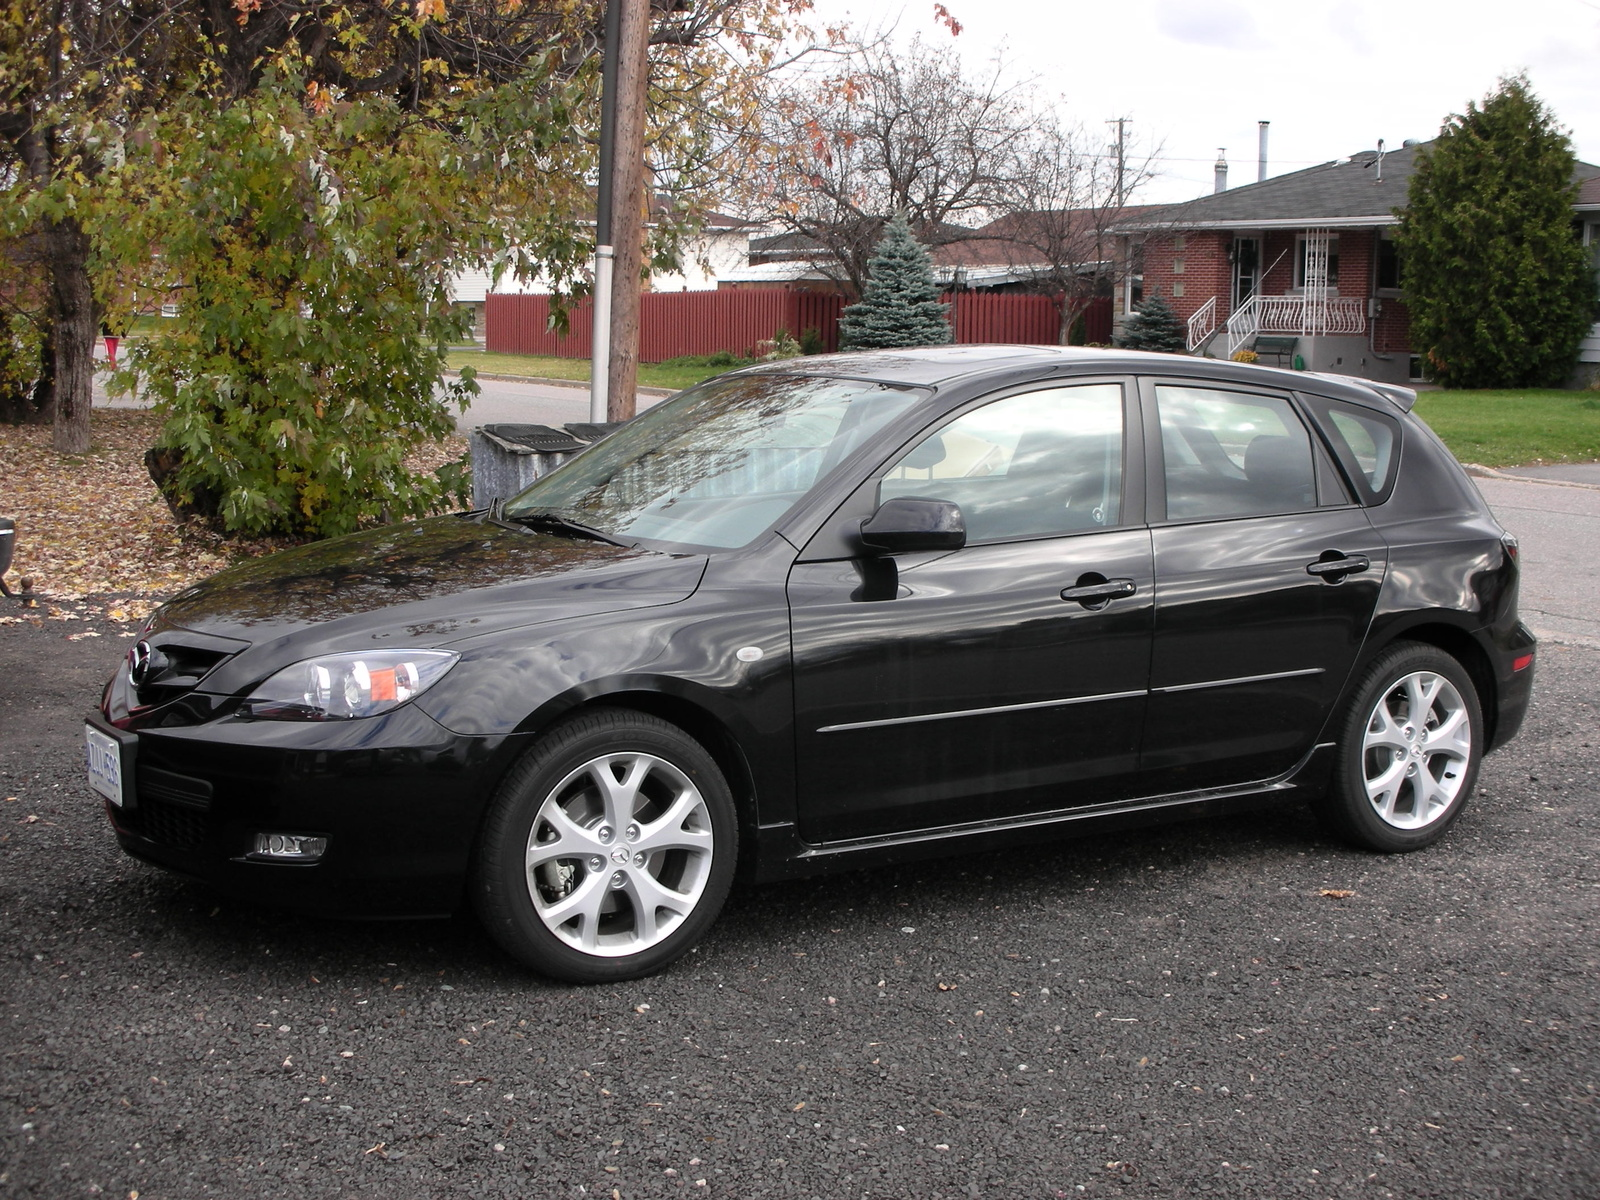 High Quality Pictures Of Mazda Mazda 3 Hatchback 2007 #15